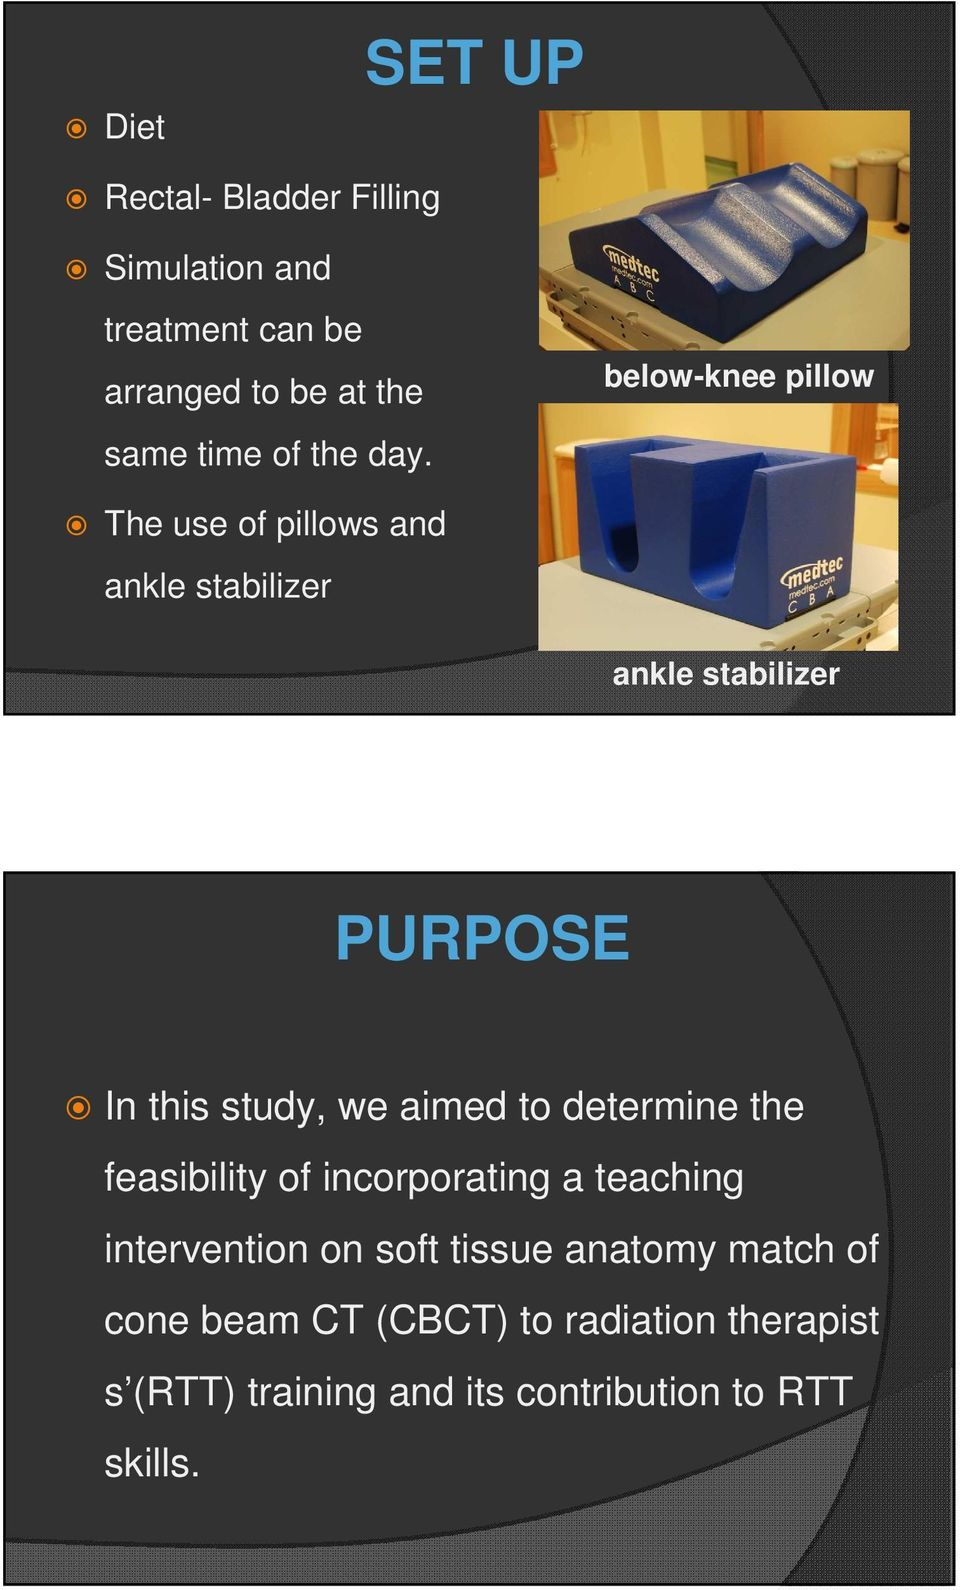 below-knee pillow The use of pillows and ankle stabilizer ankle stabilizer PURPOSE In this study, we